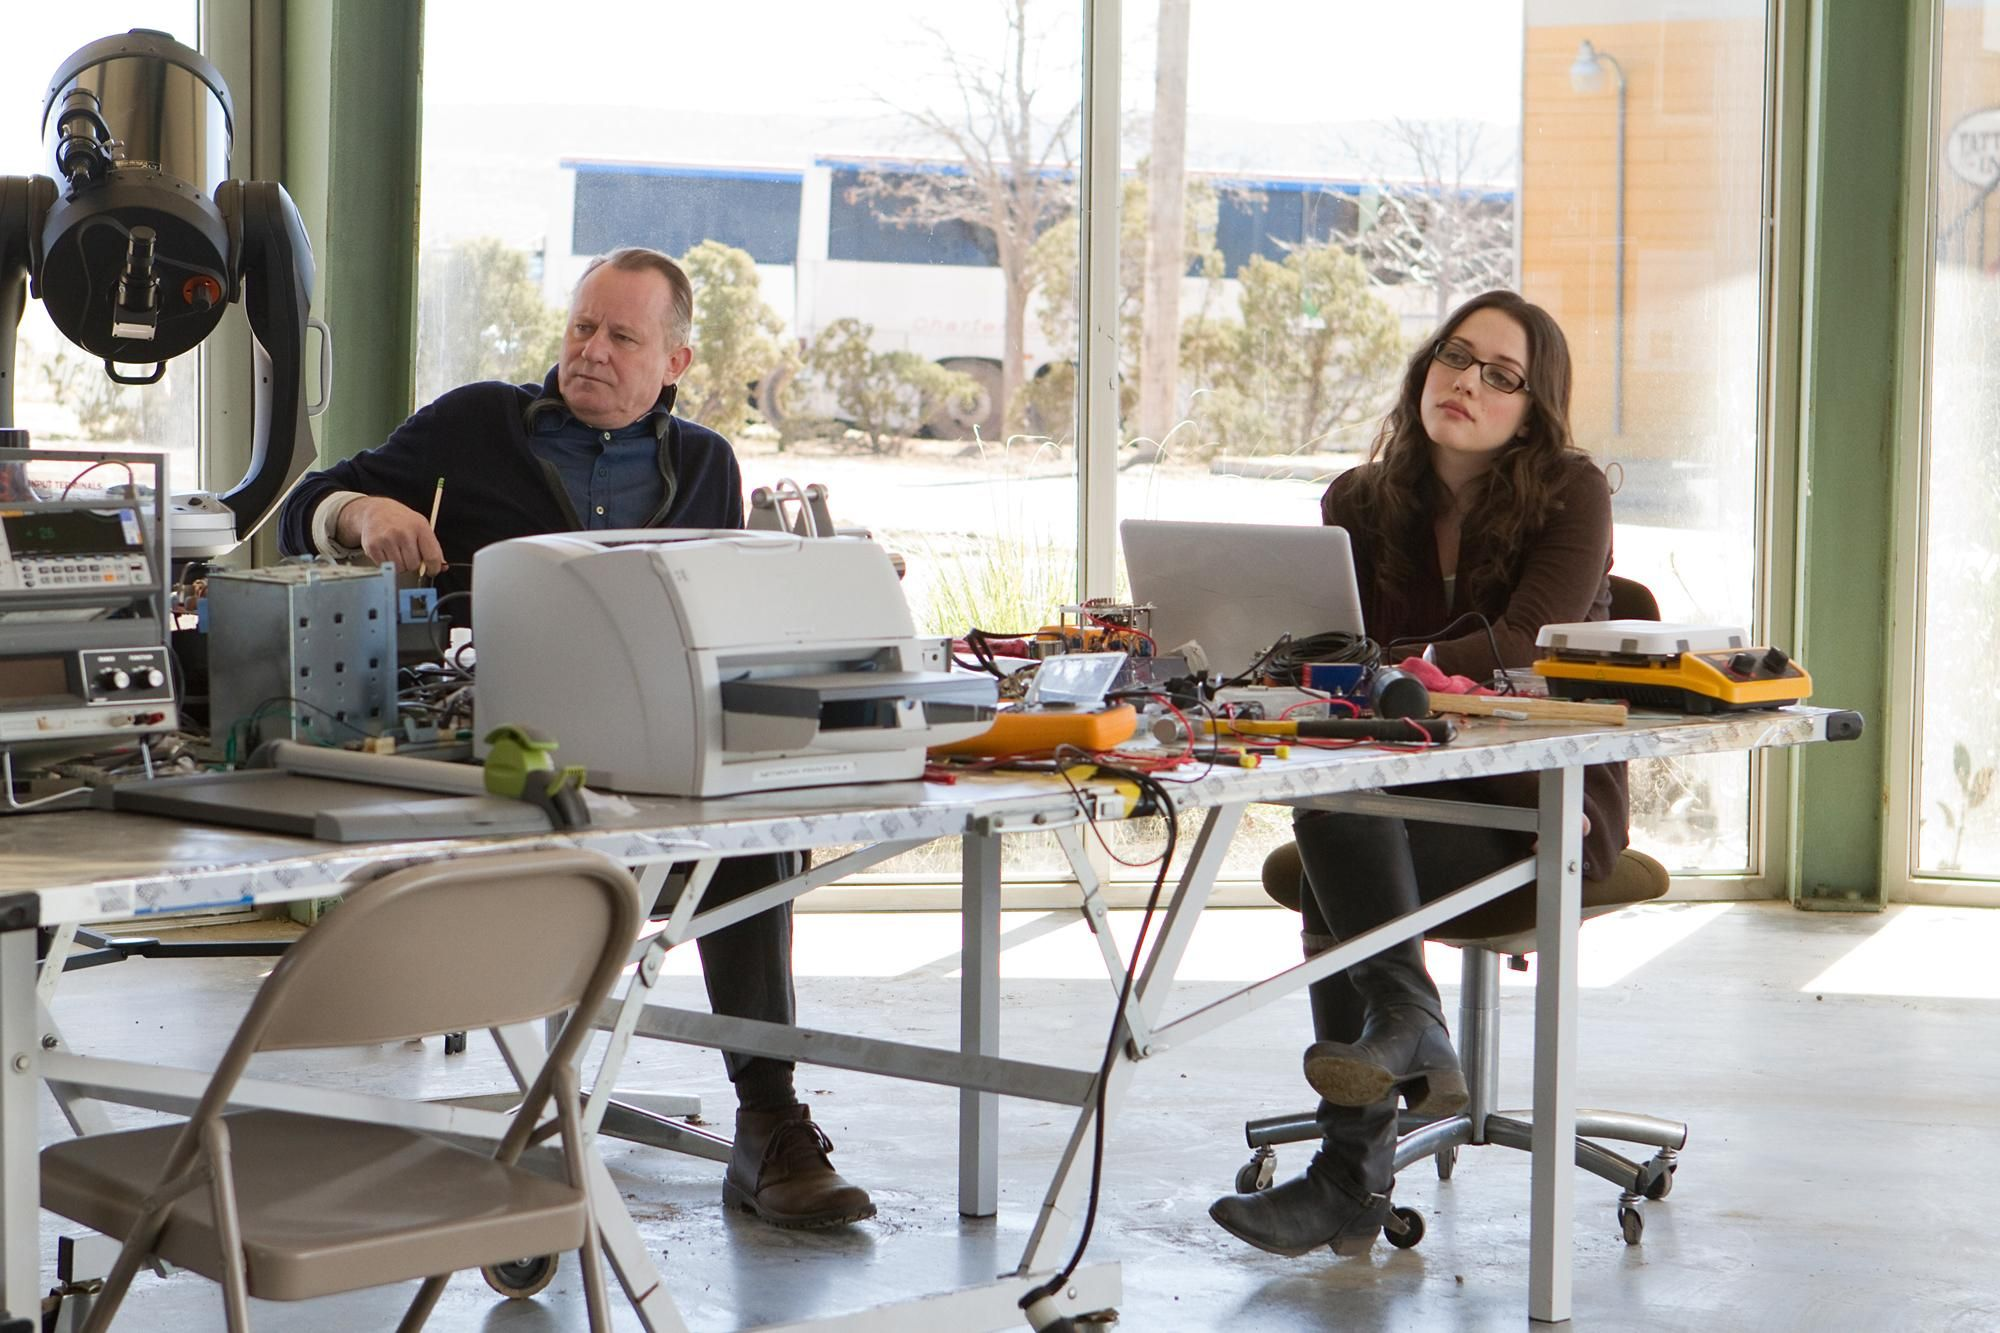 Still of Stellan Skarsgård and Kat Dennings in Thor (2011) http://www.movpins.com/dHQwODAwMzY5/thor-(2011)/still-761444352